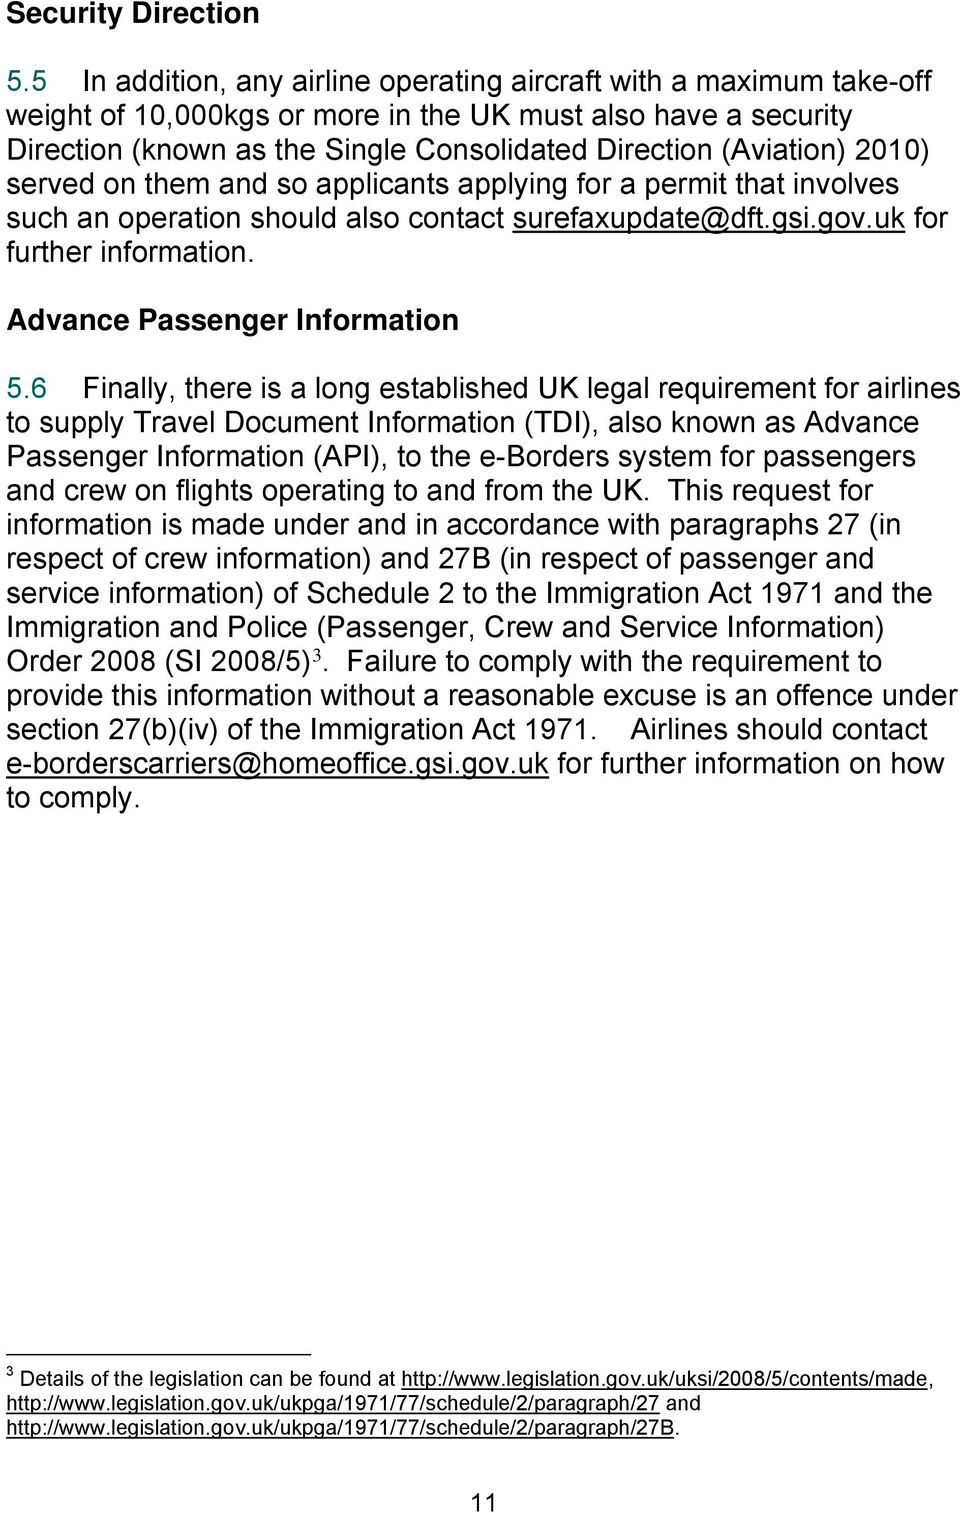 2010) served on them and so applicants applying for a permit that involves such an operation should also contact surefaxupdate@dft.gsi.gov.uk for further information. Advance Passenger Information 5.